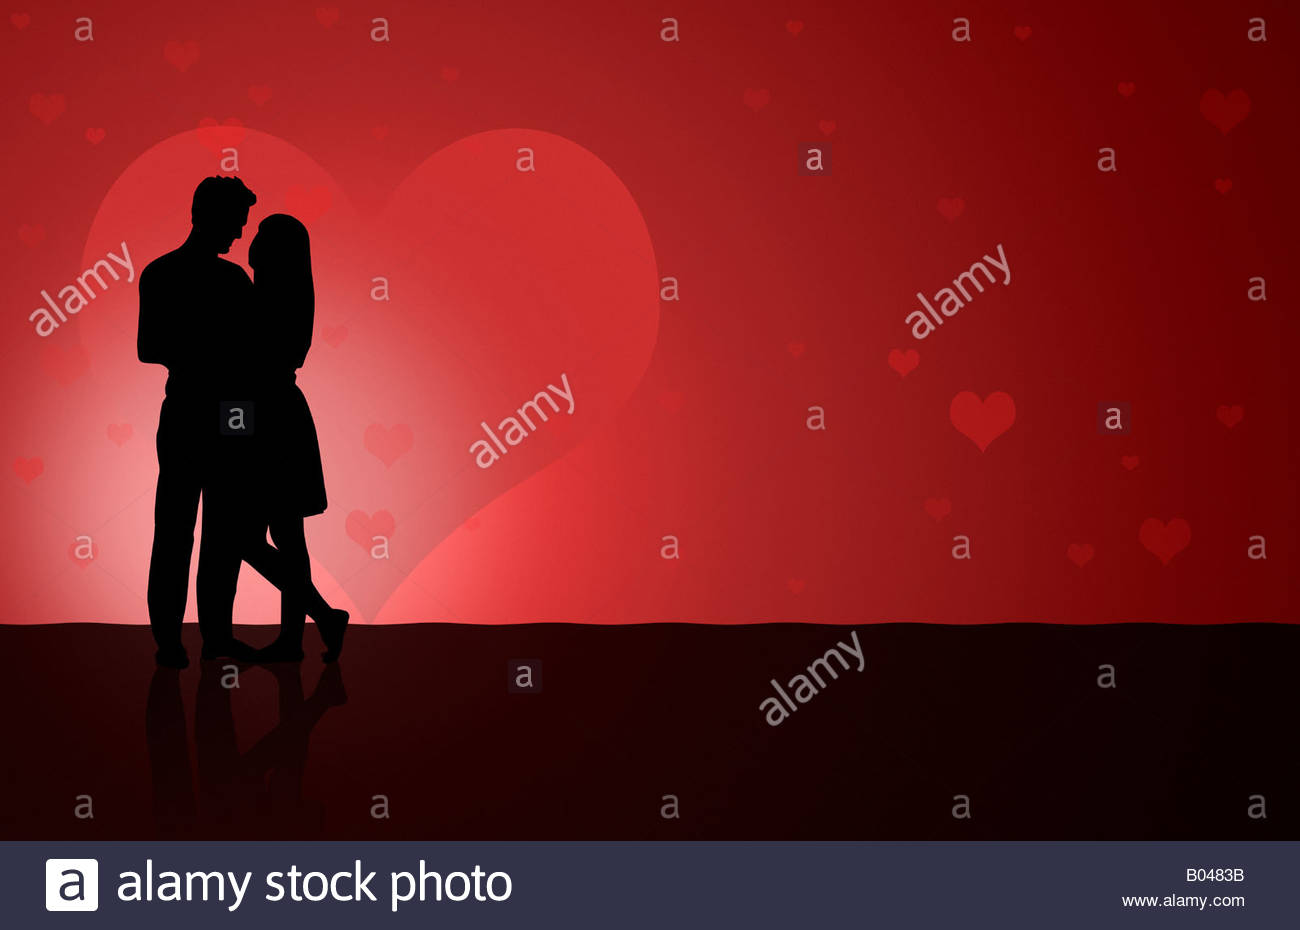 Illustation of a silhouetted couple dancing - Stock Image